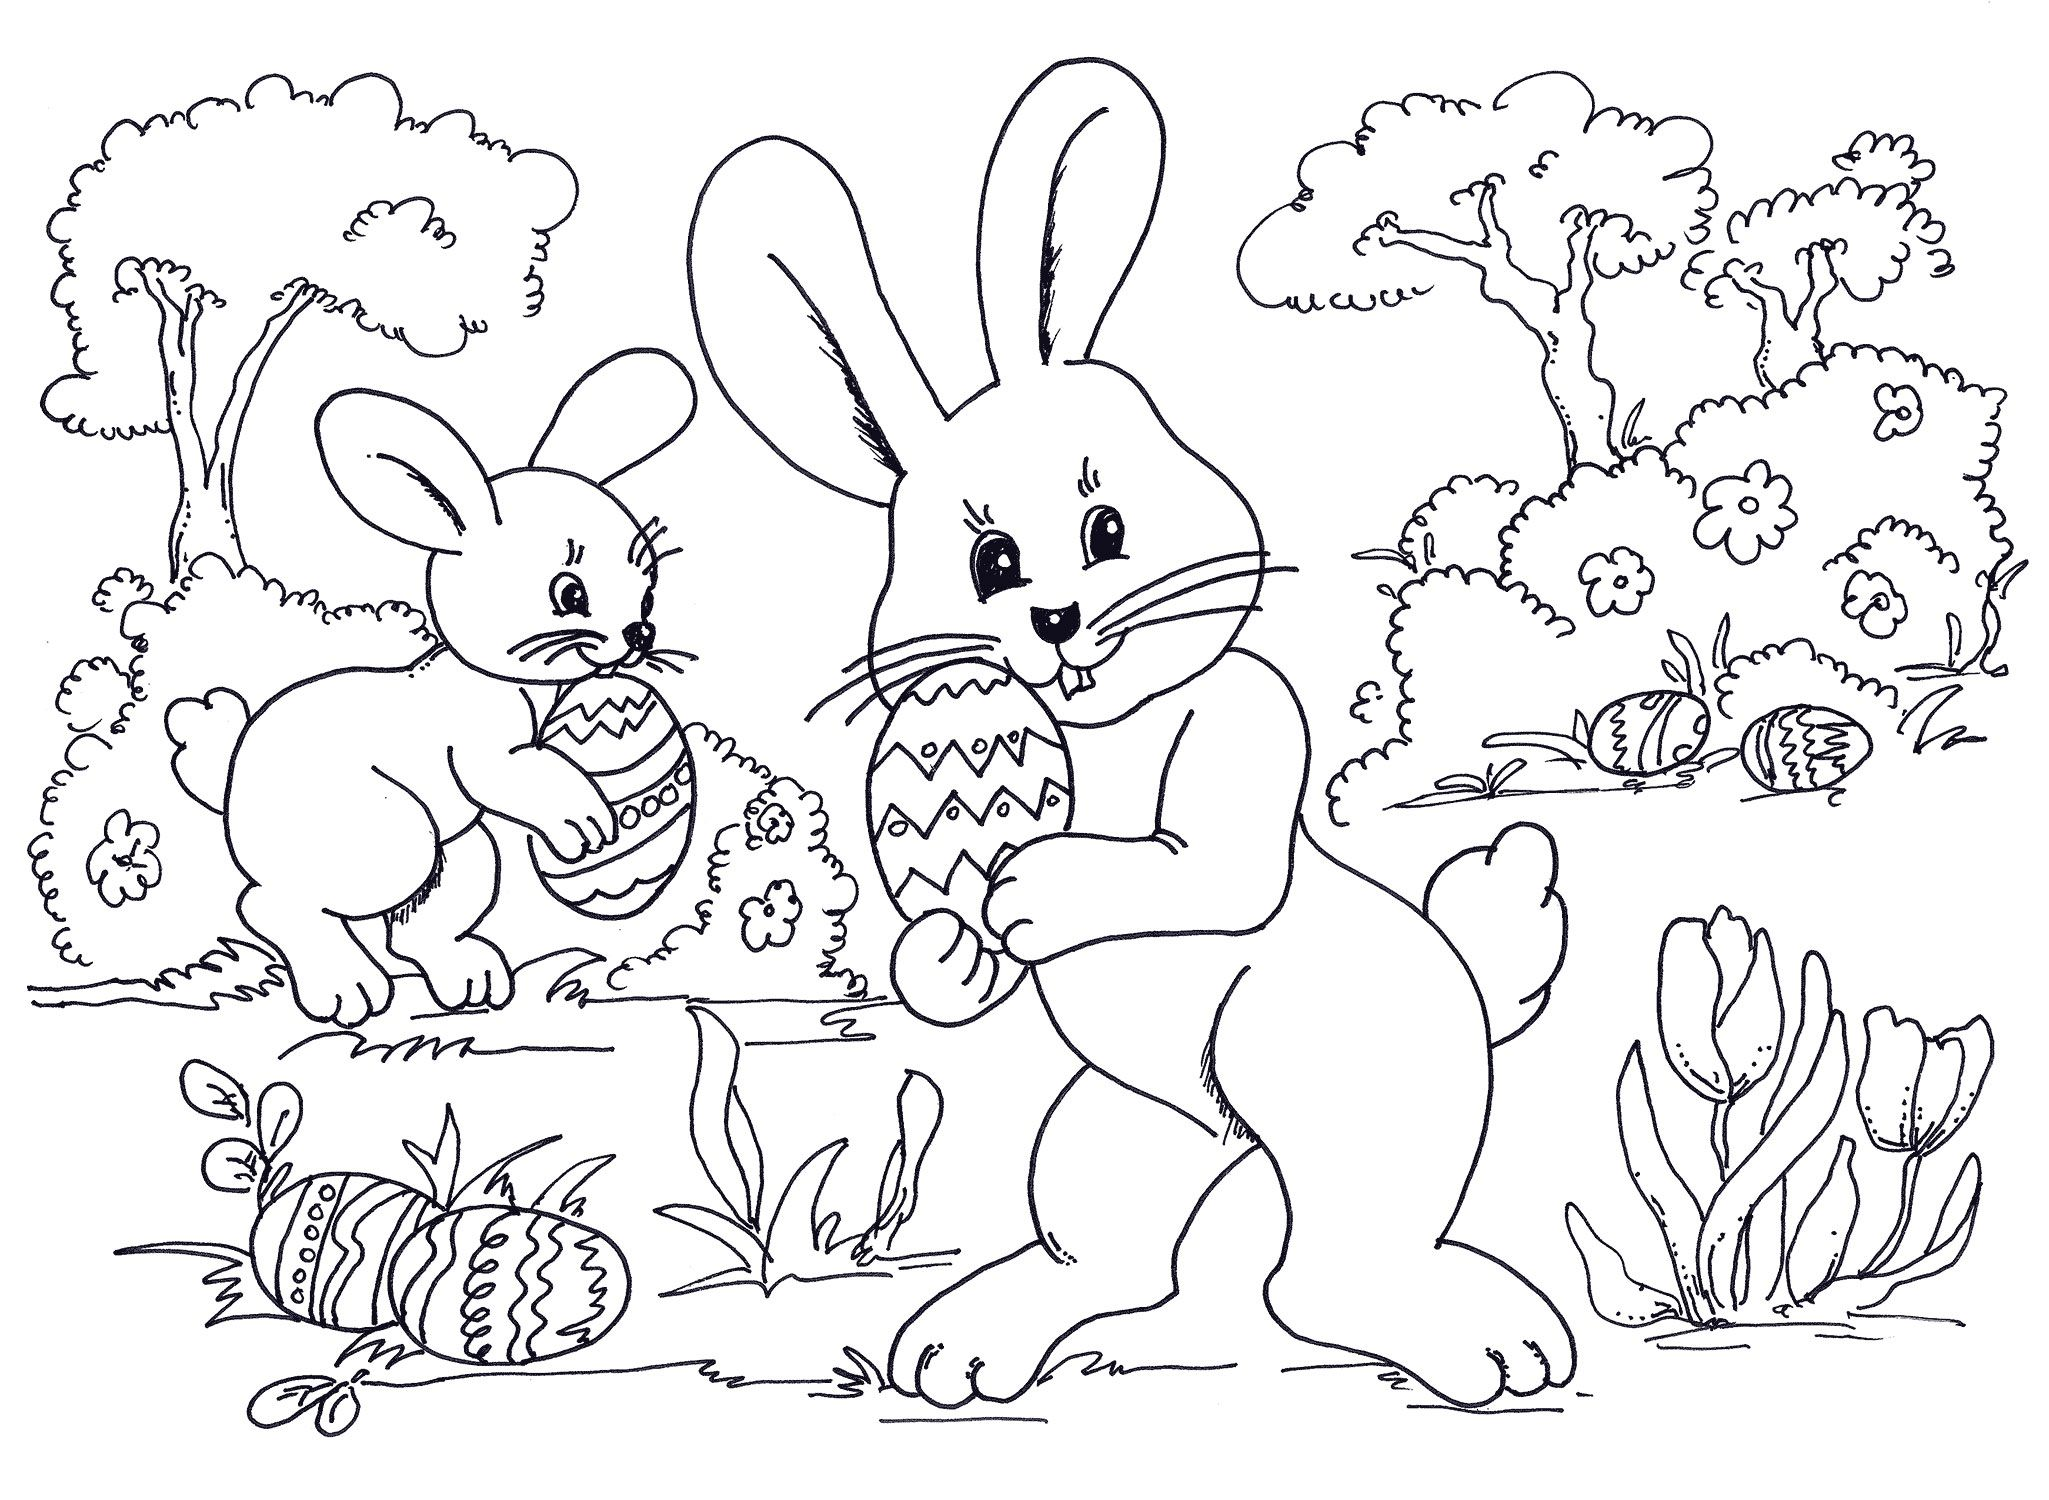 Coloring Pages Easter Easter Coloring Sheets Egg Hunting Bunnies Wallpaper Hd  Holiday